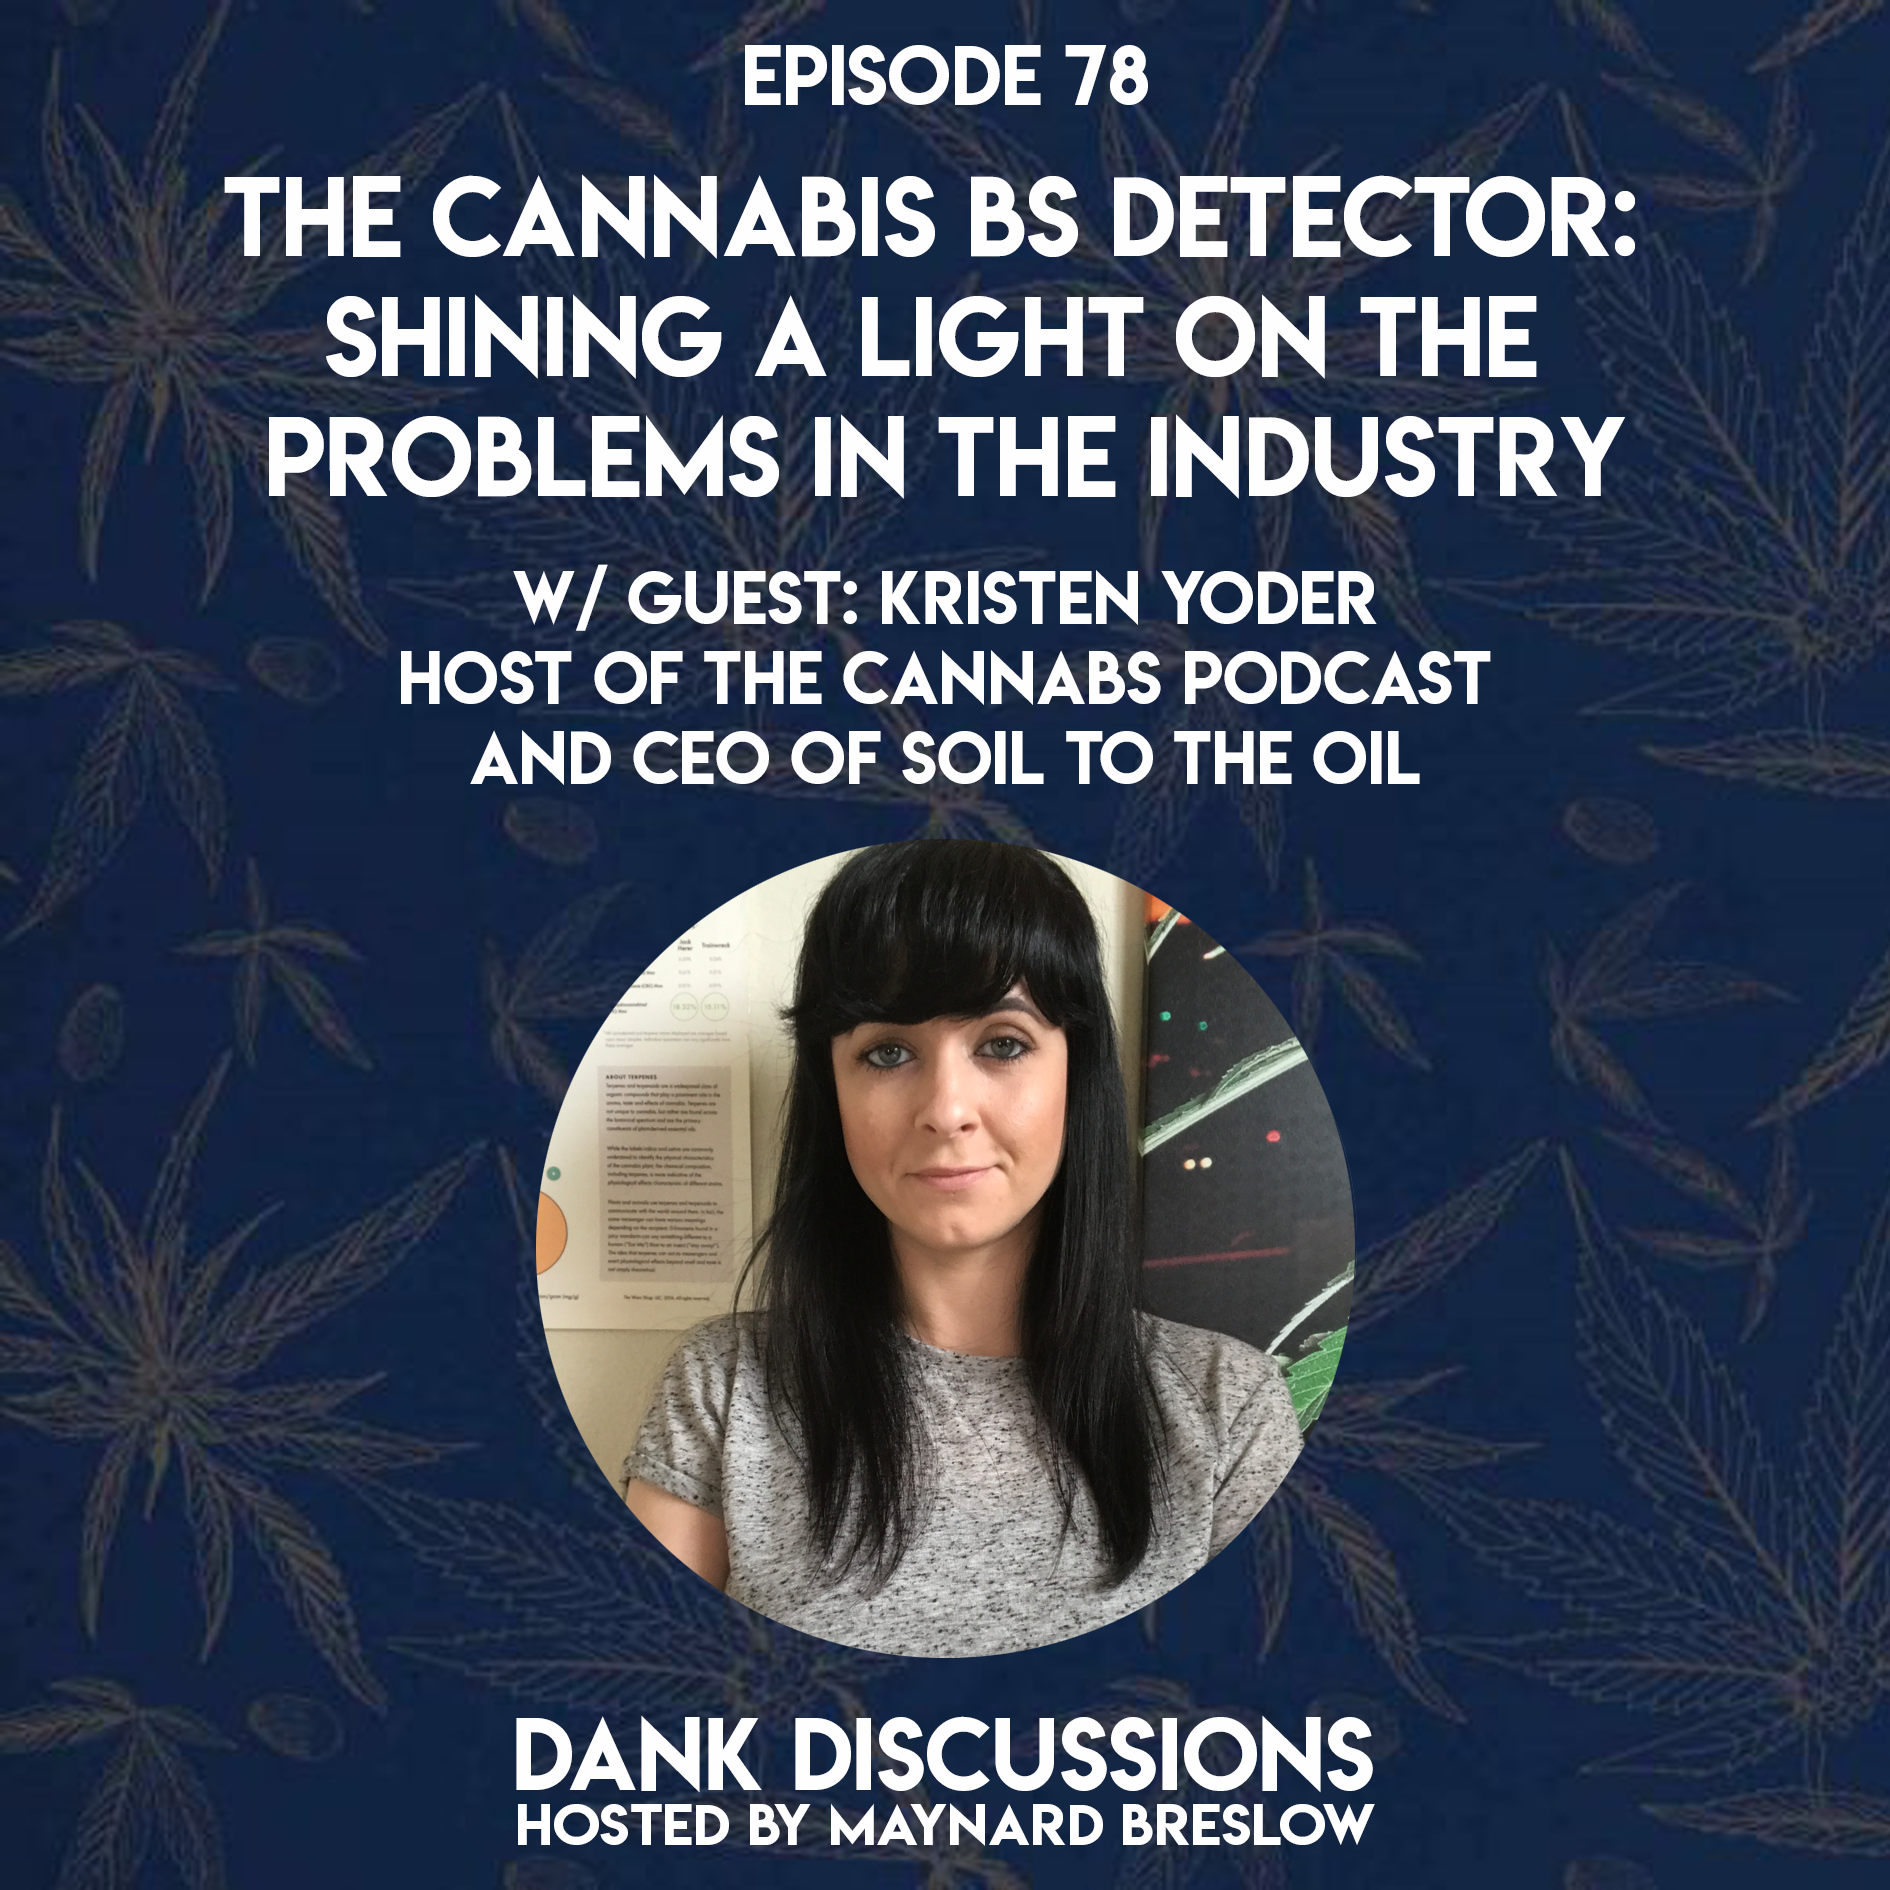 The Cannabis BS Detector: Shining a Light on Problems in the Industry